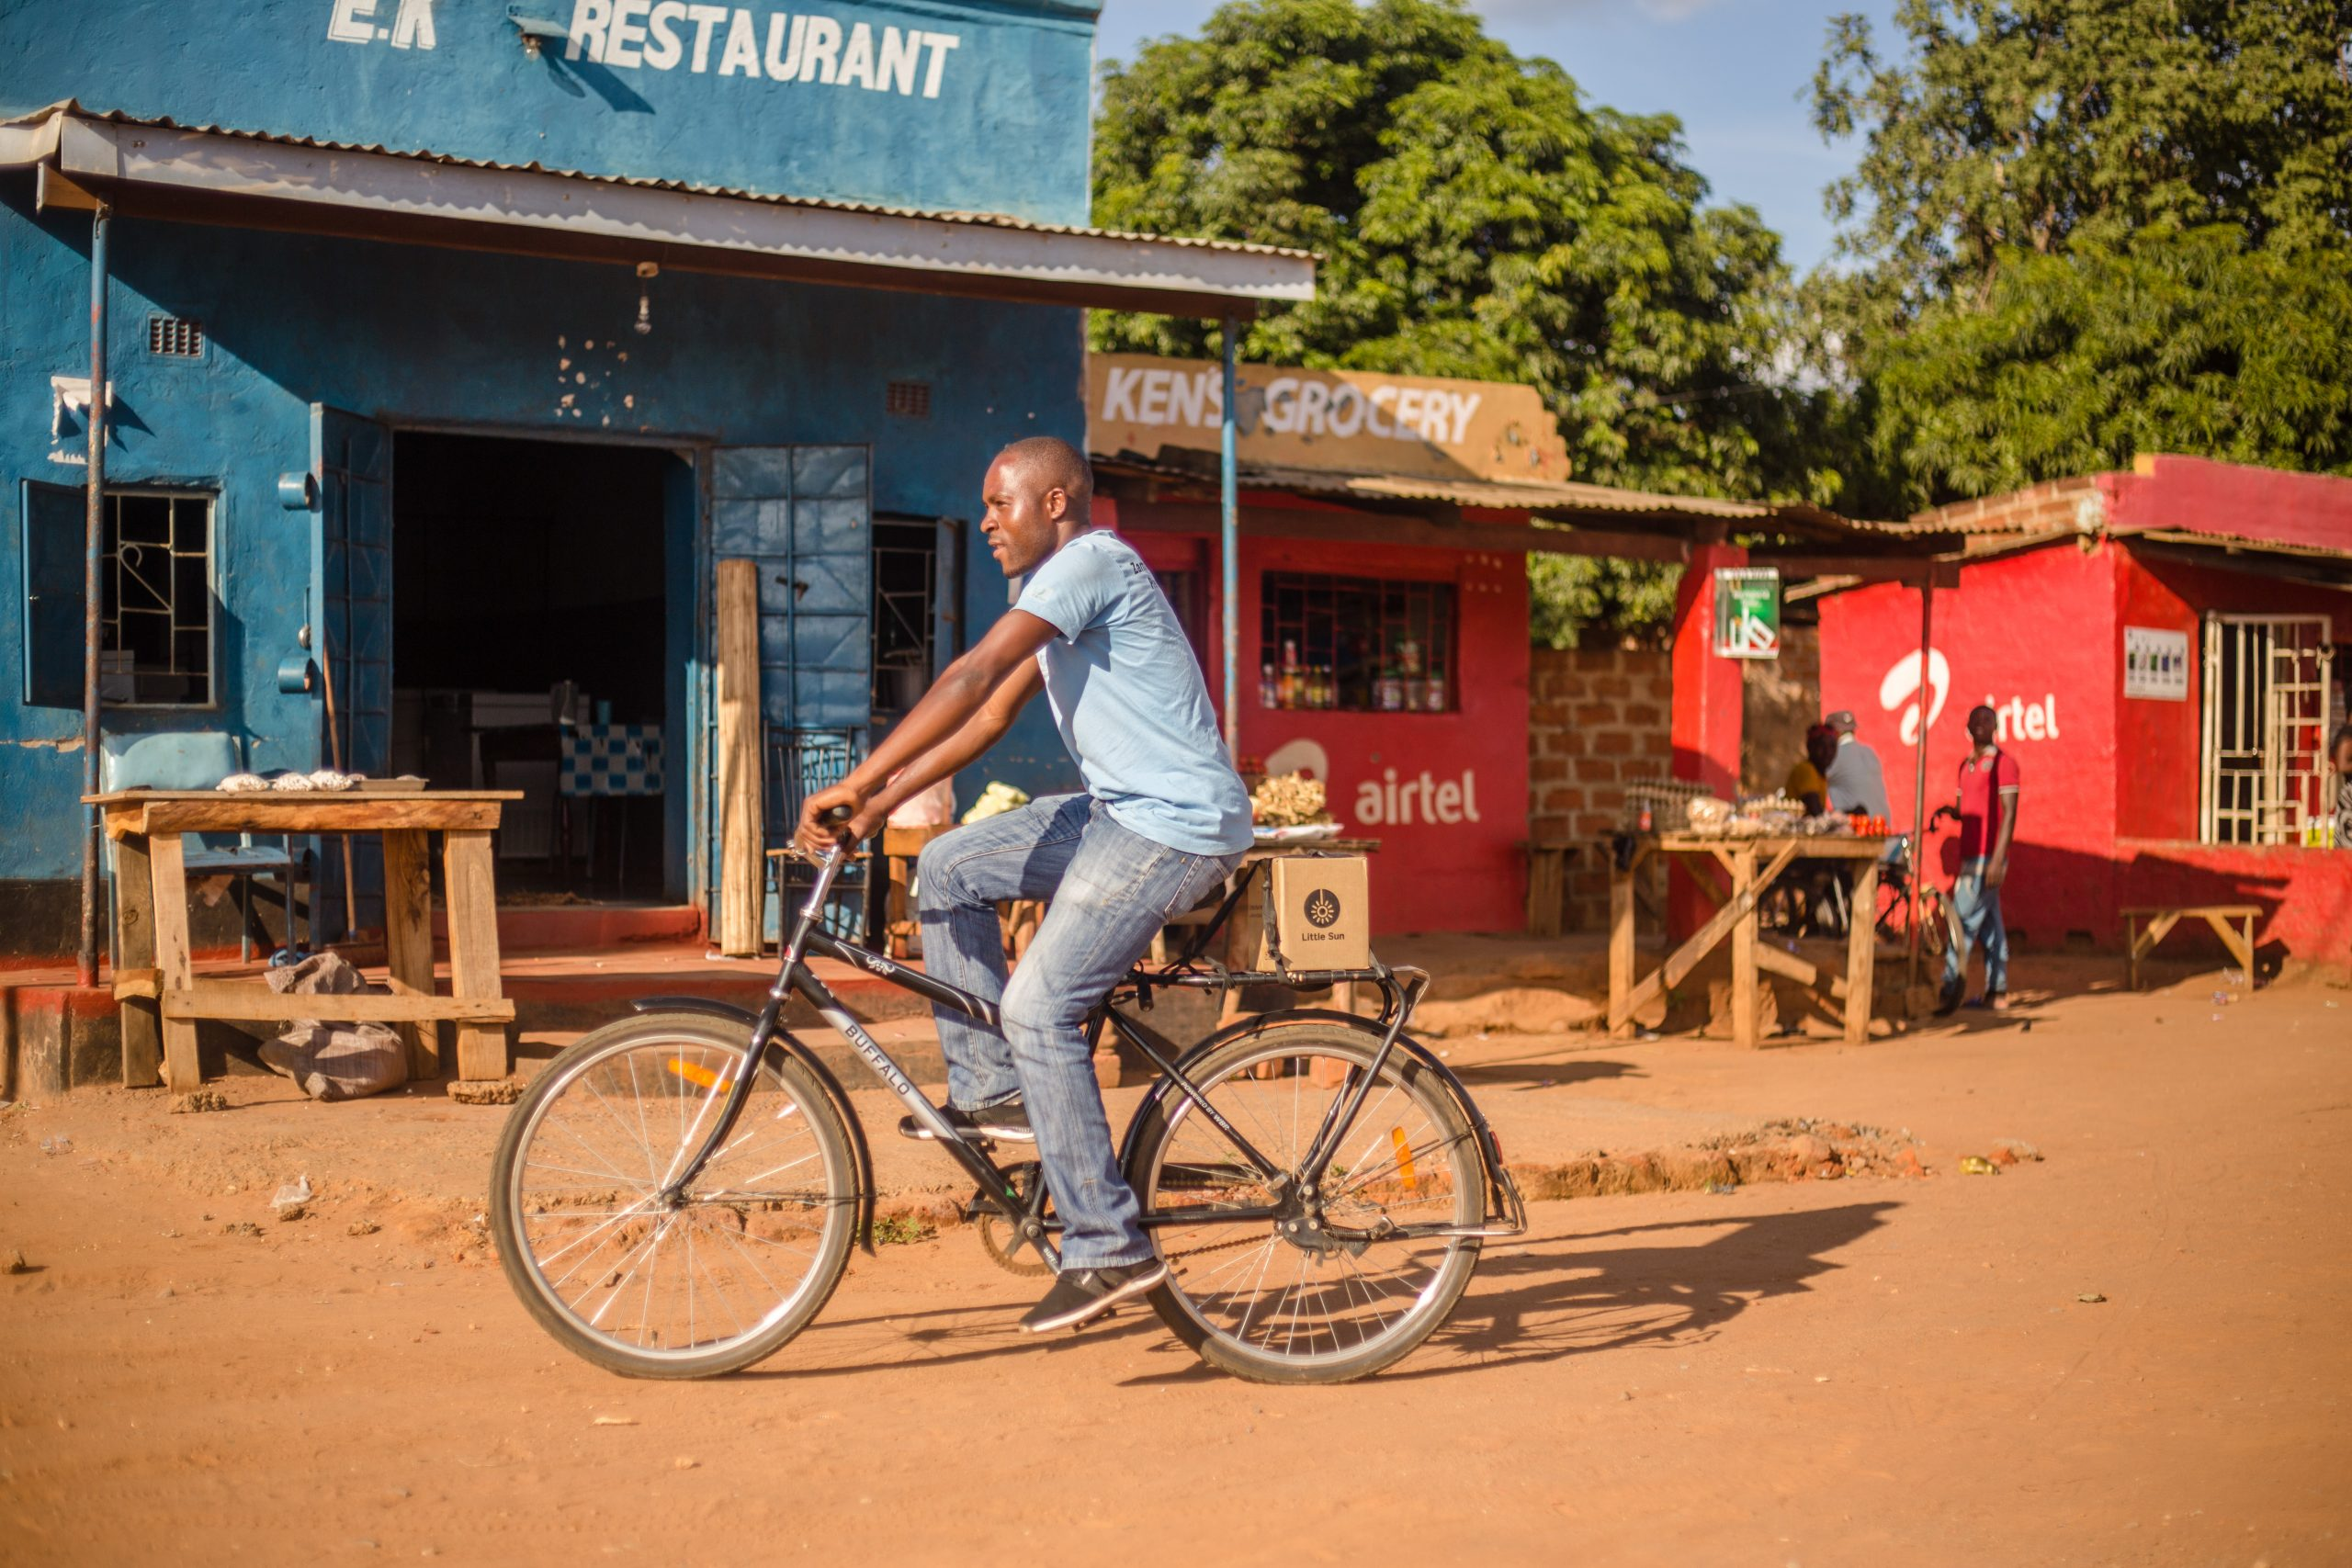 A man on the bike transporting Little Sun solar lamps for food security programs